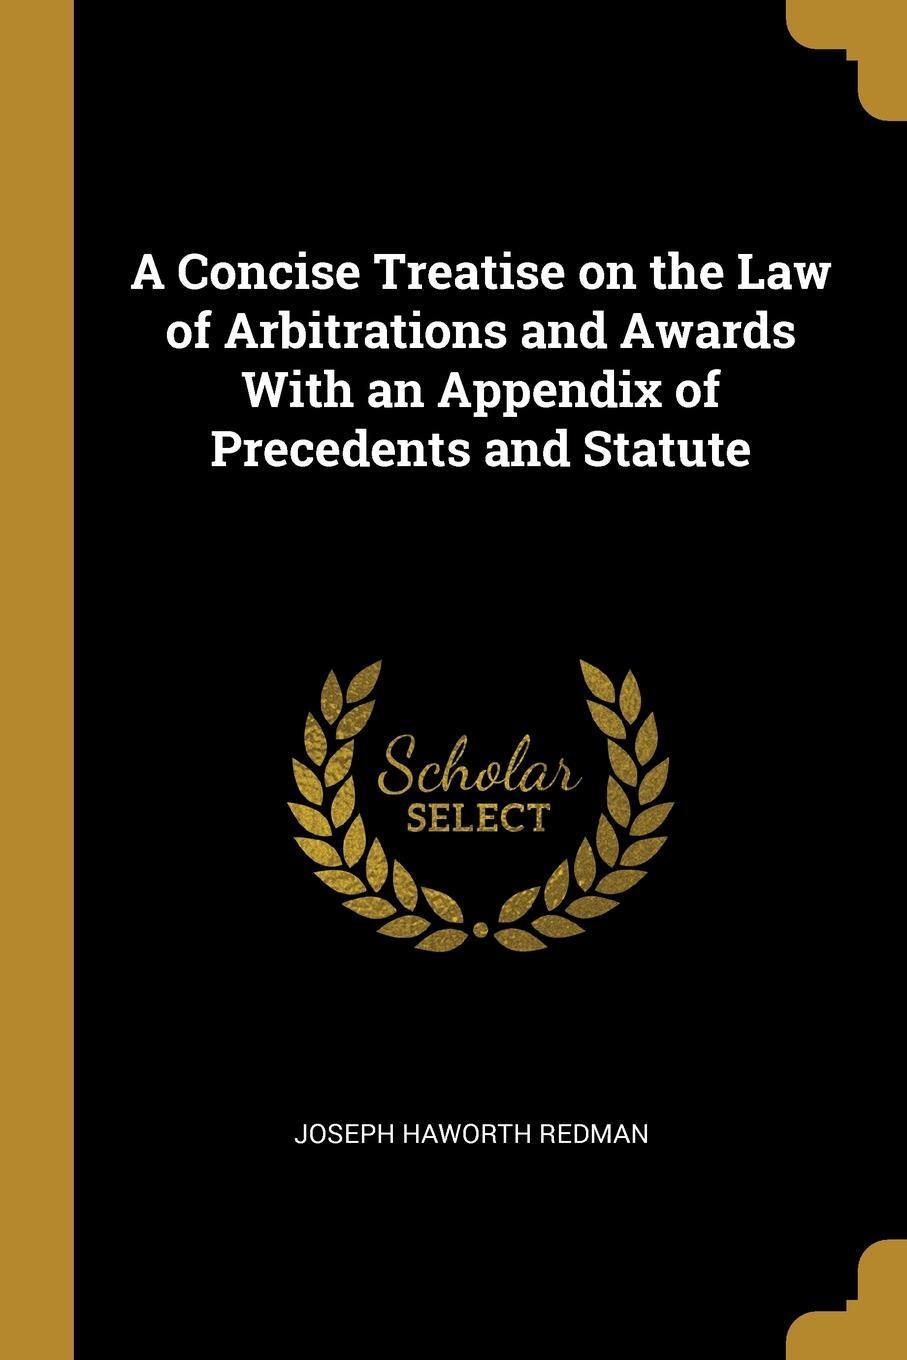 Joseph Haworth Redman. A Concise Treatise on the Law of Arbitrations and Awards With an Appendix of Precedents and Statute